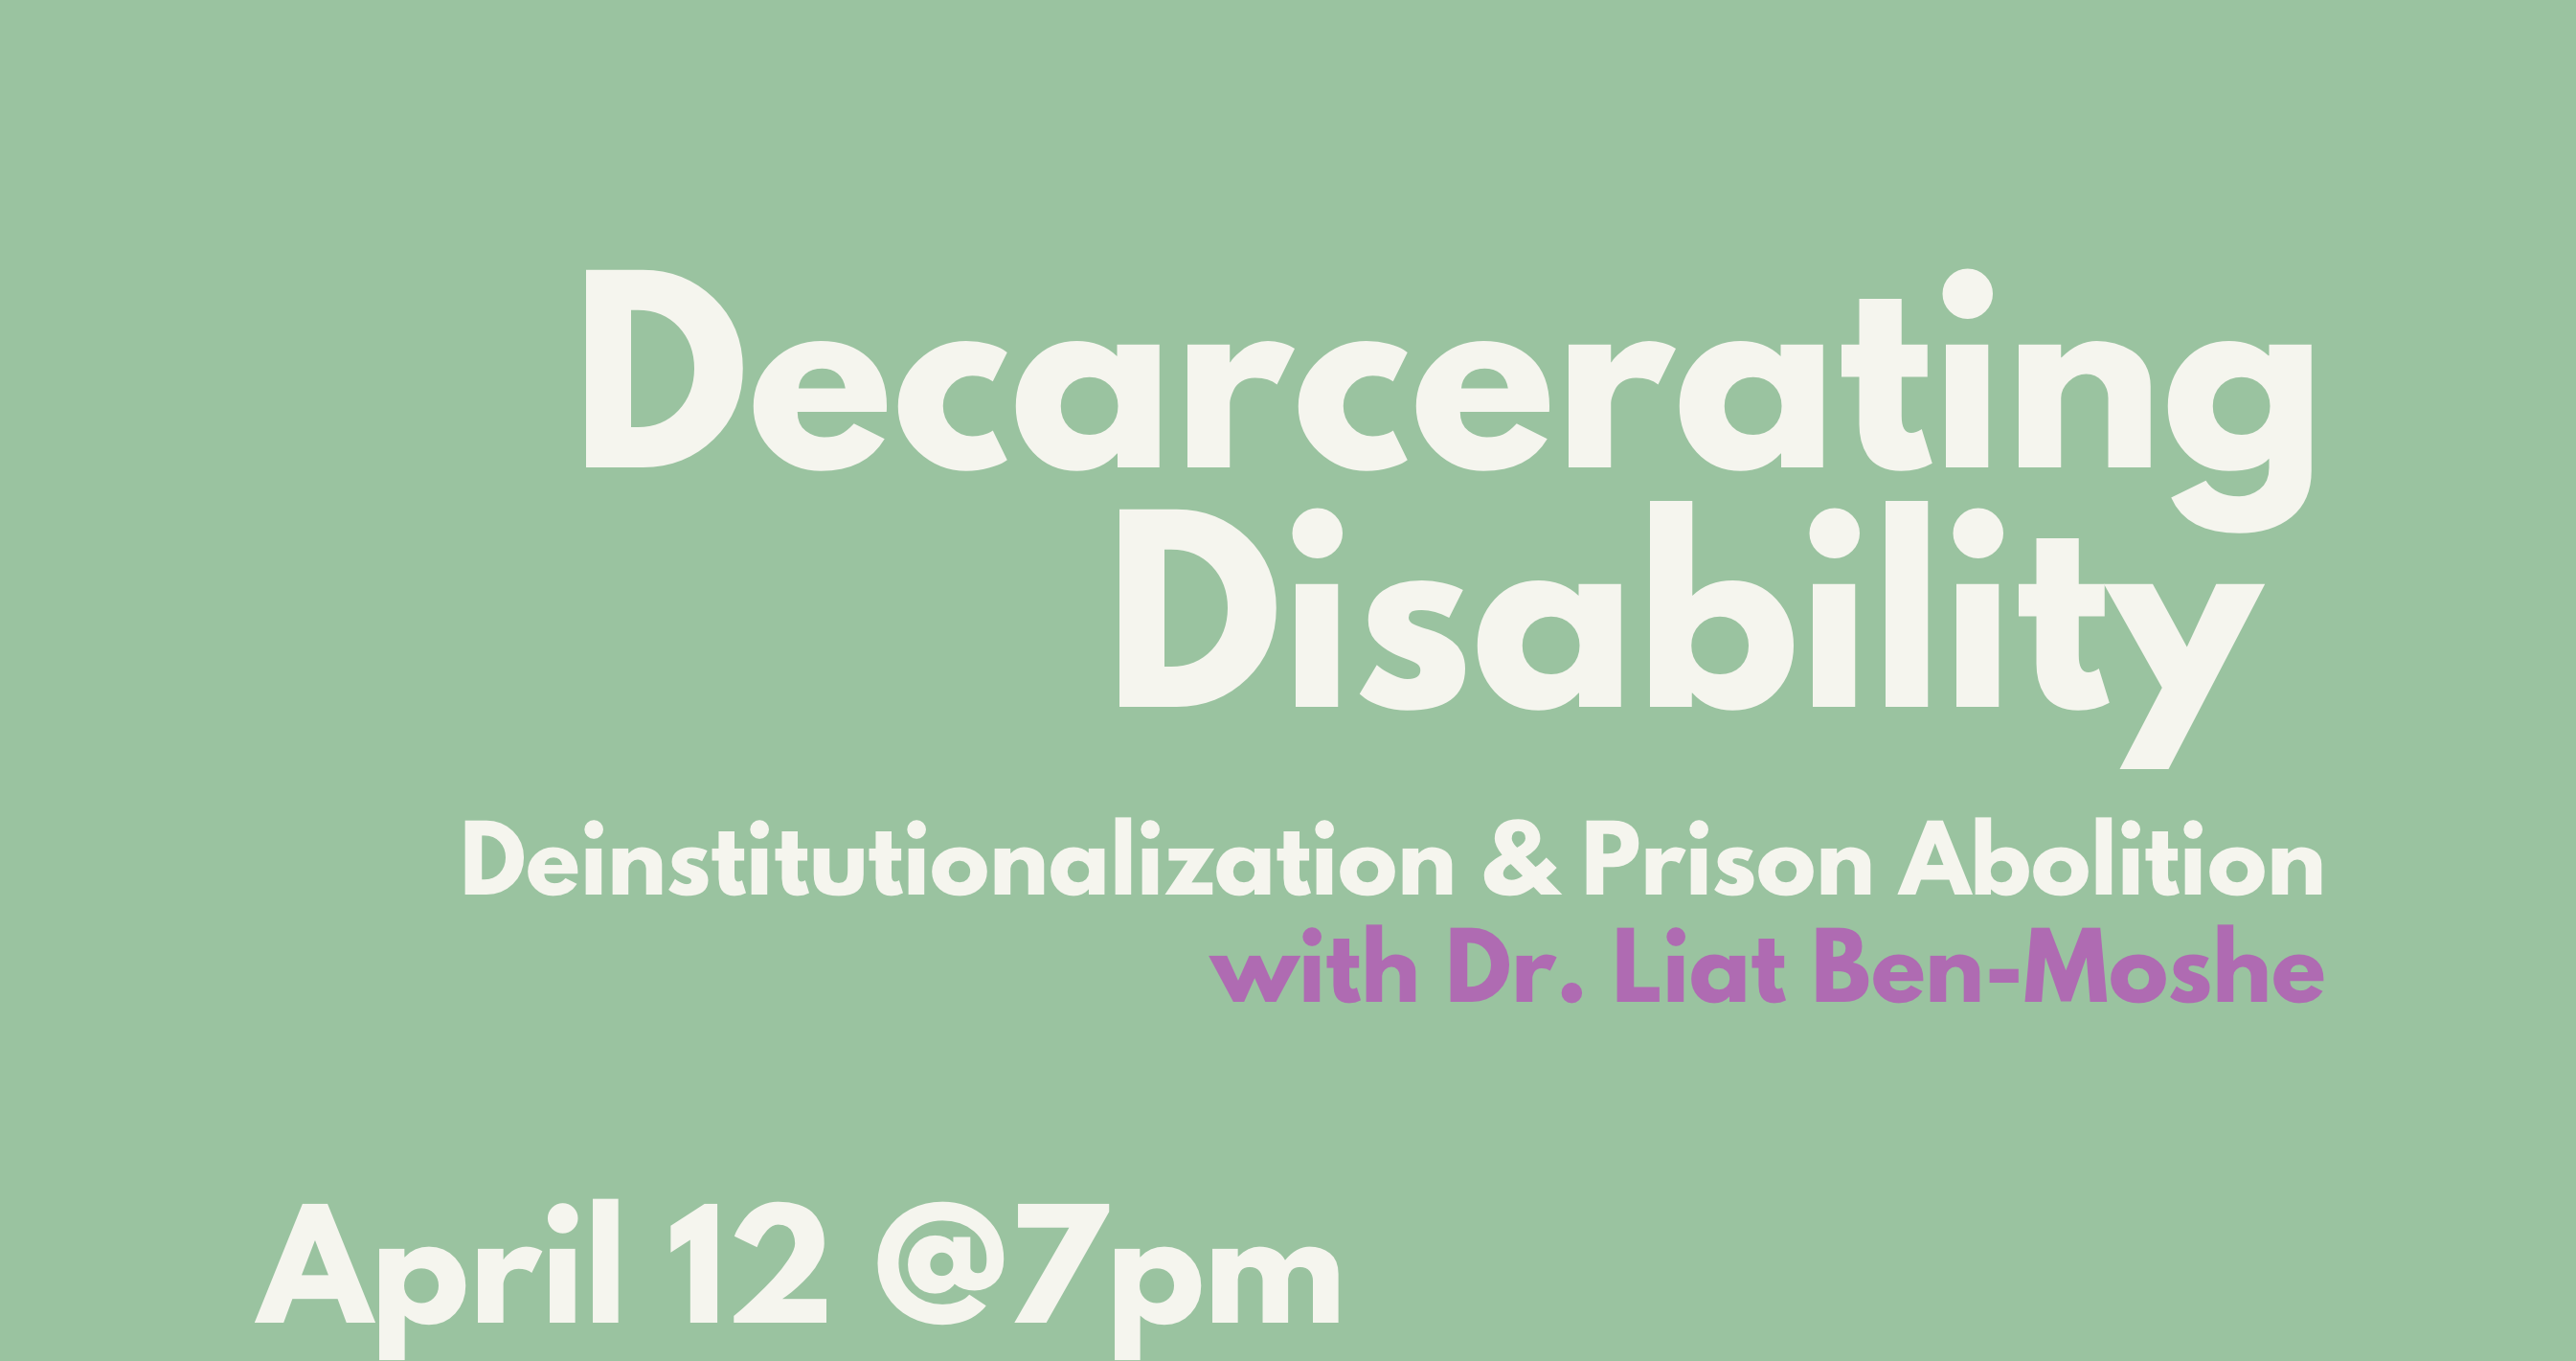 Decarcerating Disability Deinstitutionalization & Prison Abolition with Dr. Liat Ben-Moshe, green background white and pink lettering